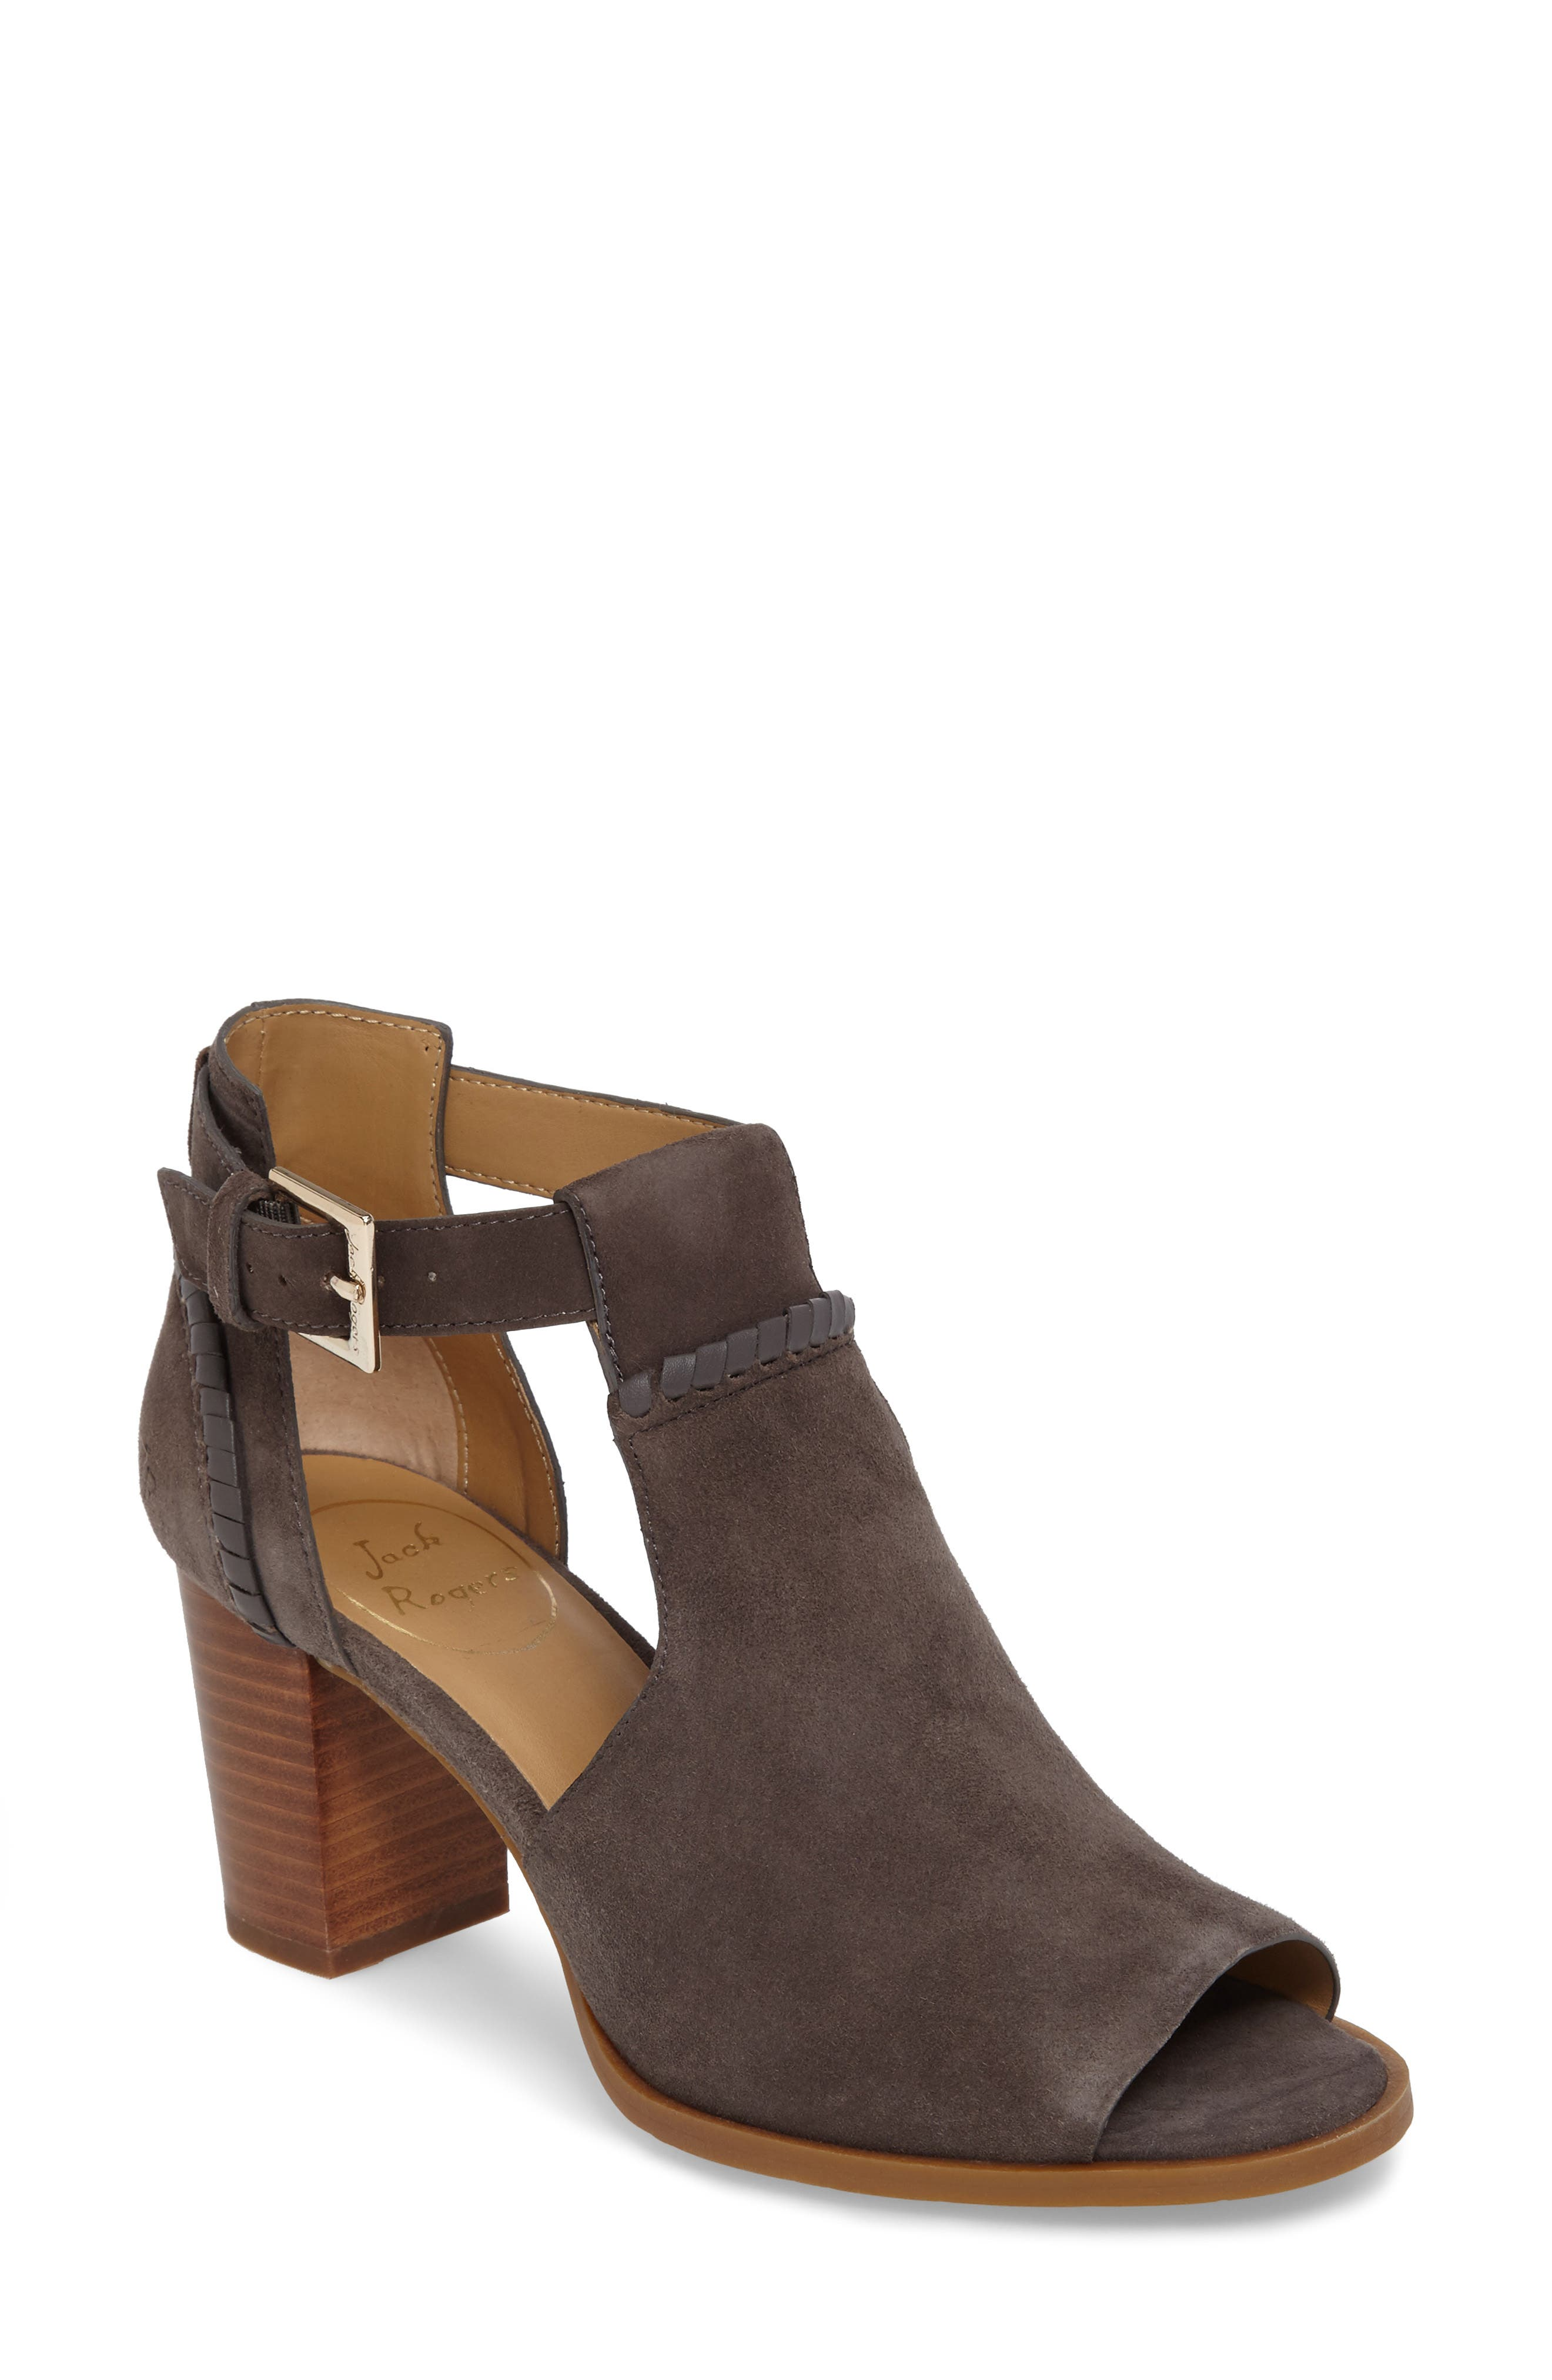 Cameron Block Heel Sandal,                         Main,                         color, Charcoal Suede